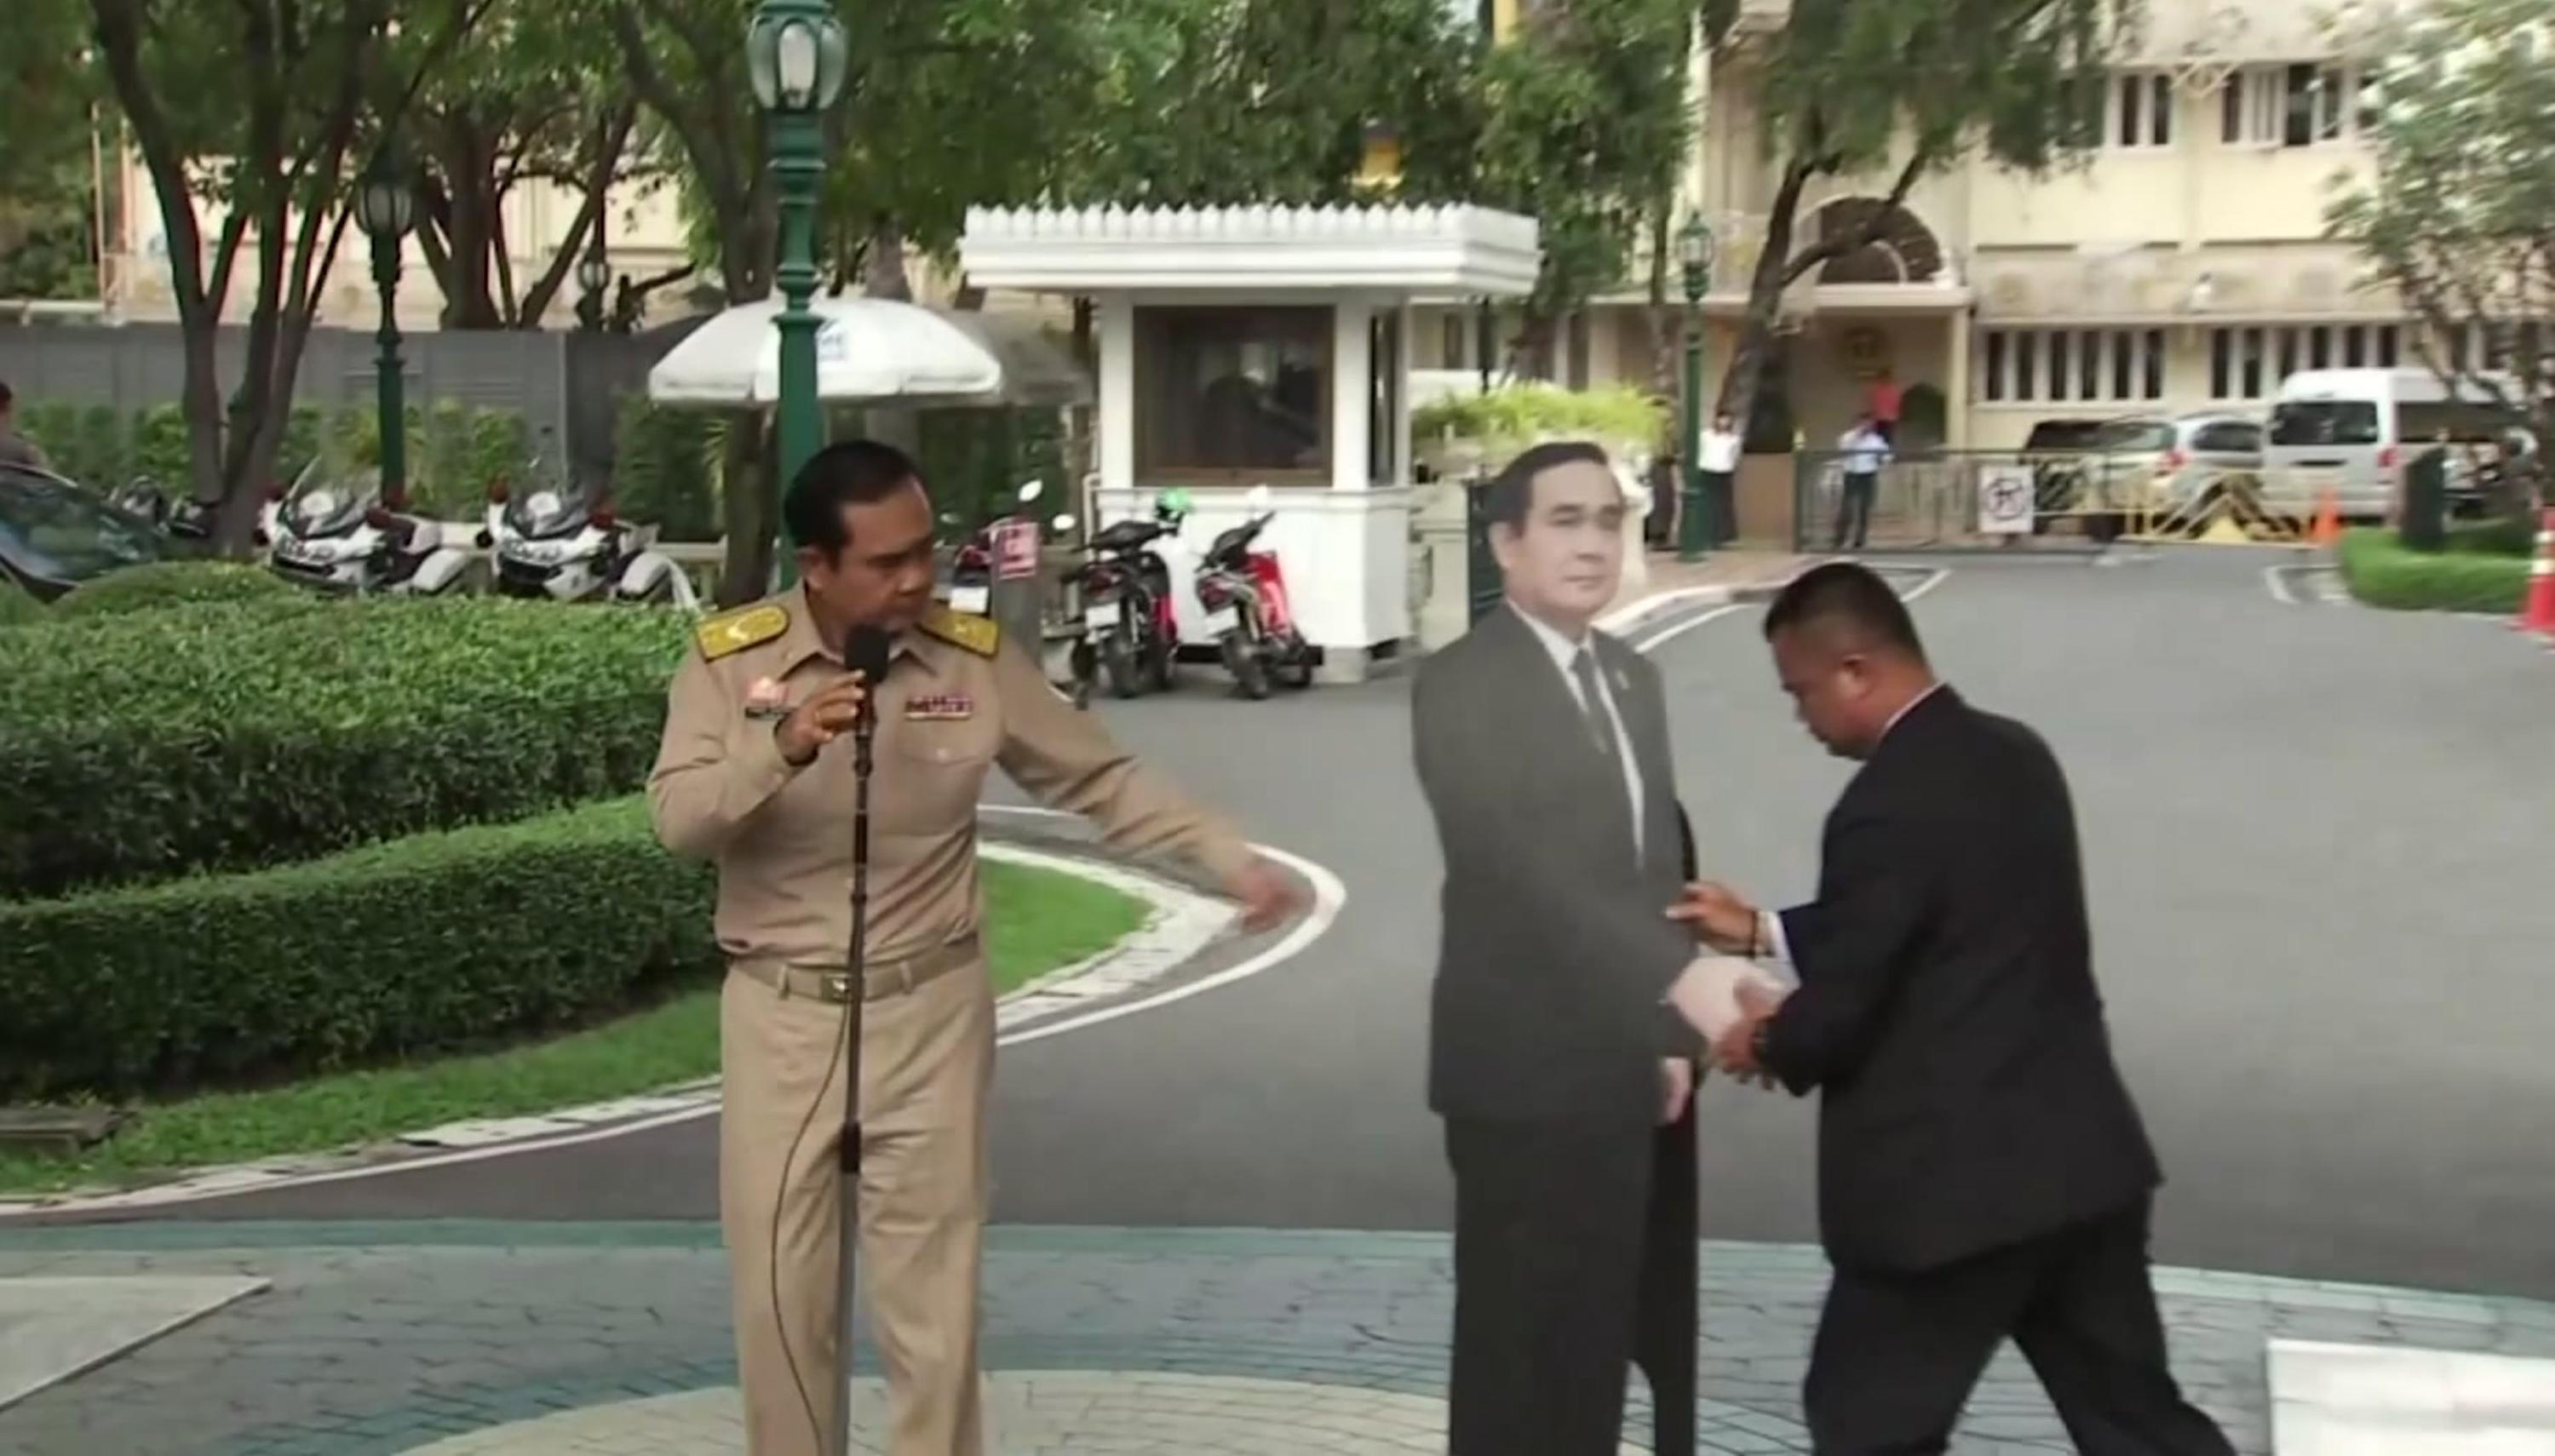 In this image from video, Thailand's Prime Minister Prayuth Chan-ocha, left, directs the scene as a life-sized cardboard cut-out figure of himself is carried into view by an aid, in Bangkok, Thailand, Monday Jan. 8, 2018. (TPBS via AP)<p></p>